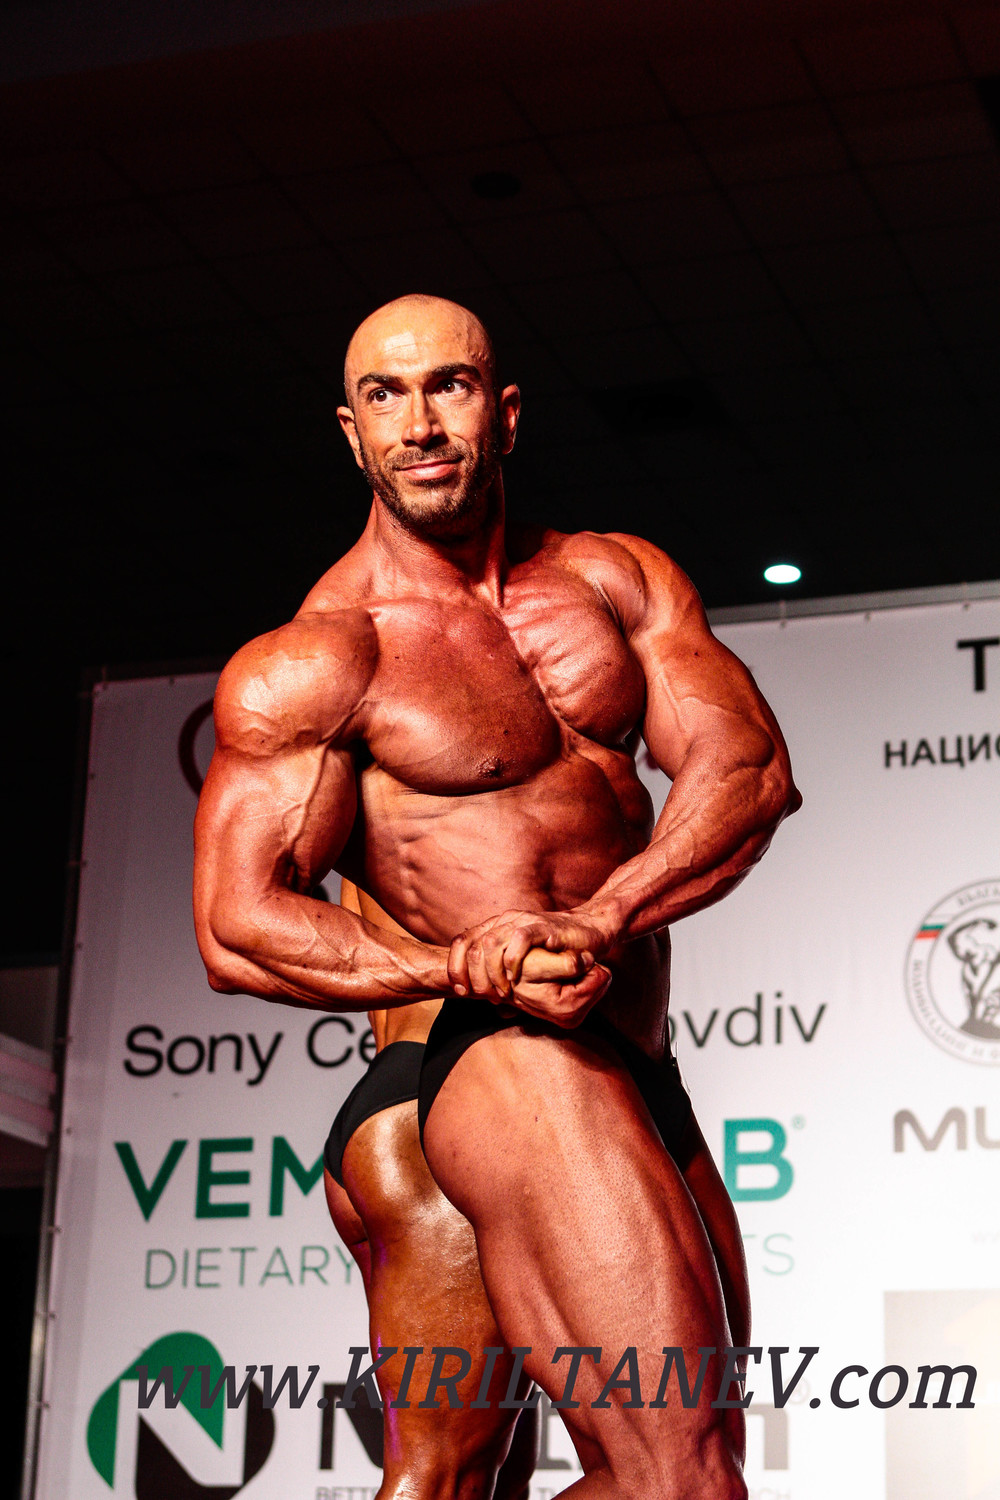 Ventsislav Dimitrov and his training and nutrition plan for maximum shredding